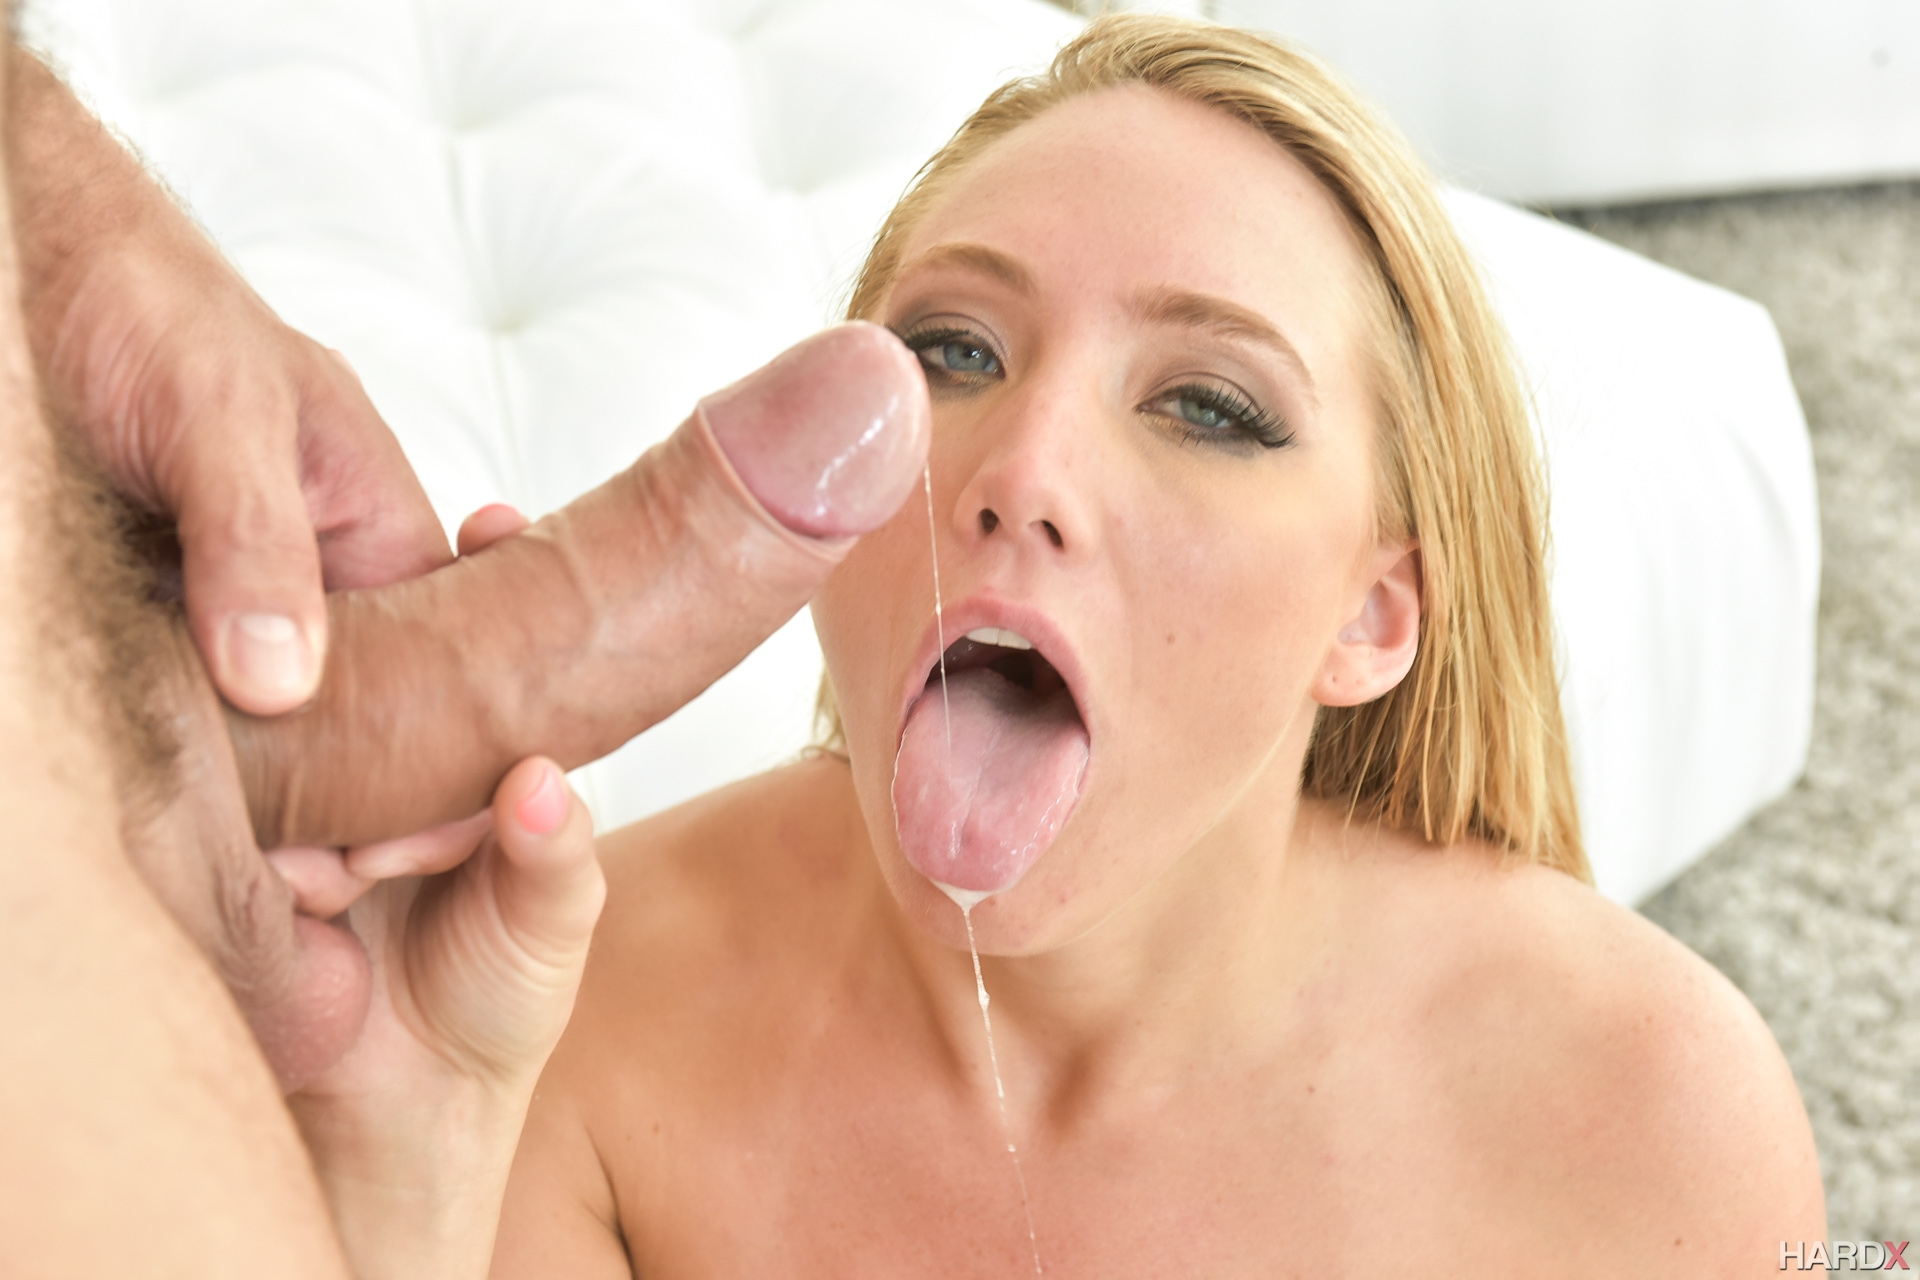 Hard core squirting cum are